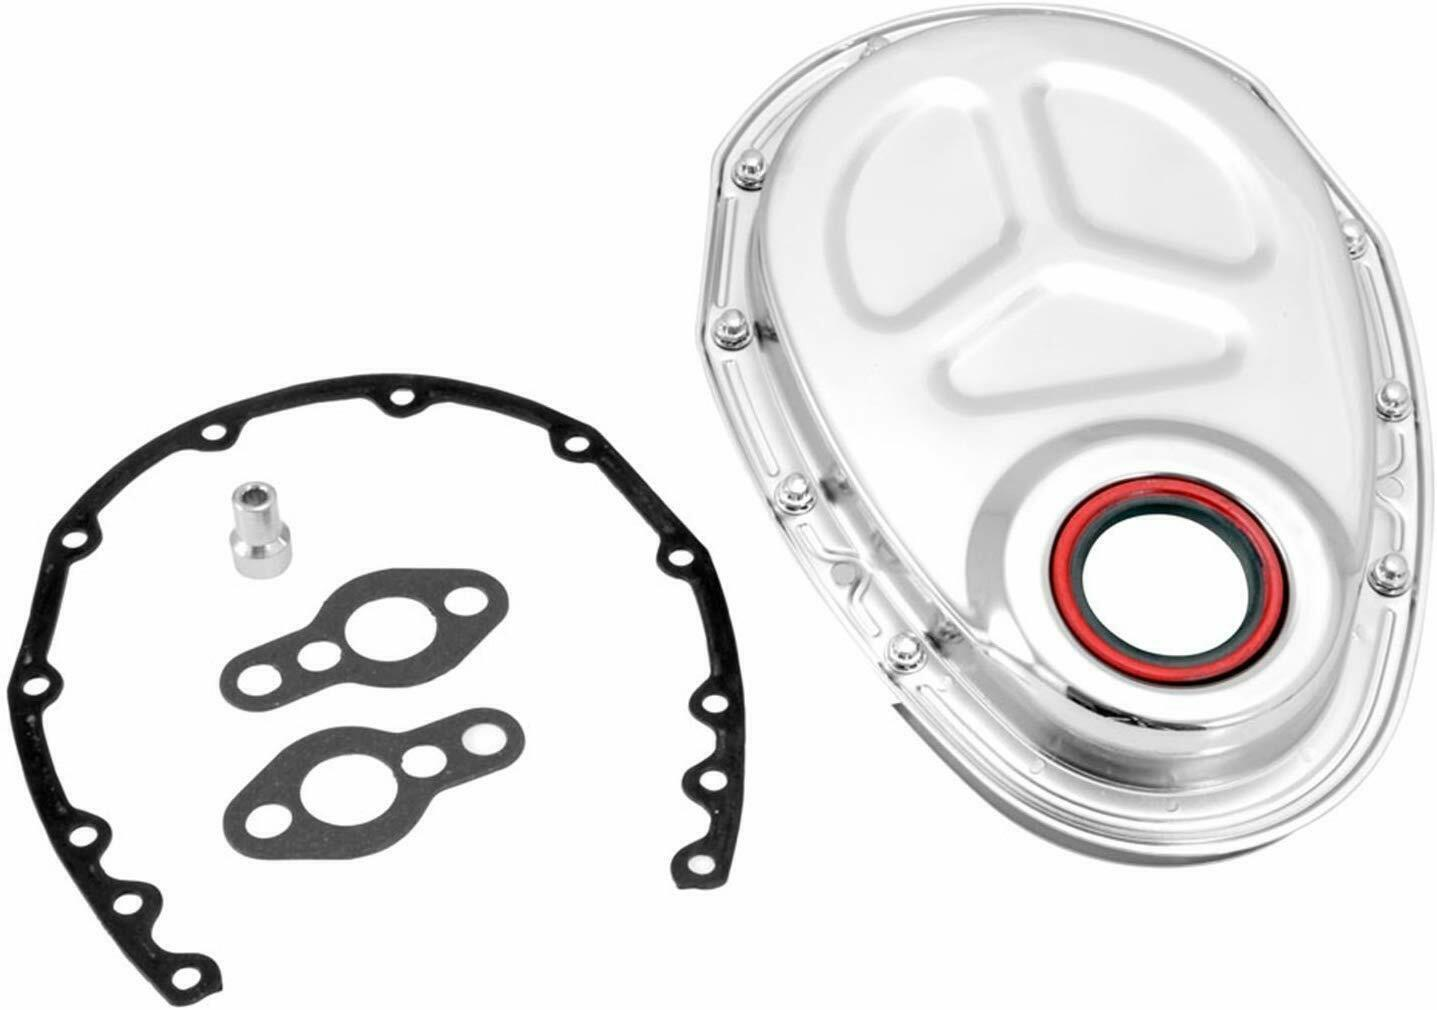 SBC 283 302 305 307 350 383 400 Timing Cover Kit Chrome Steel Small Block Chevy